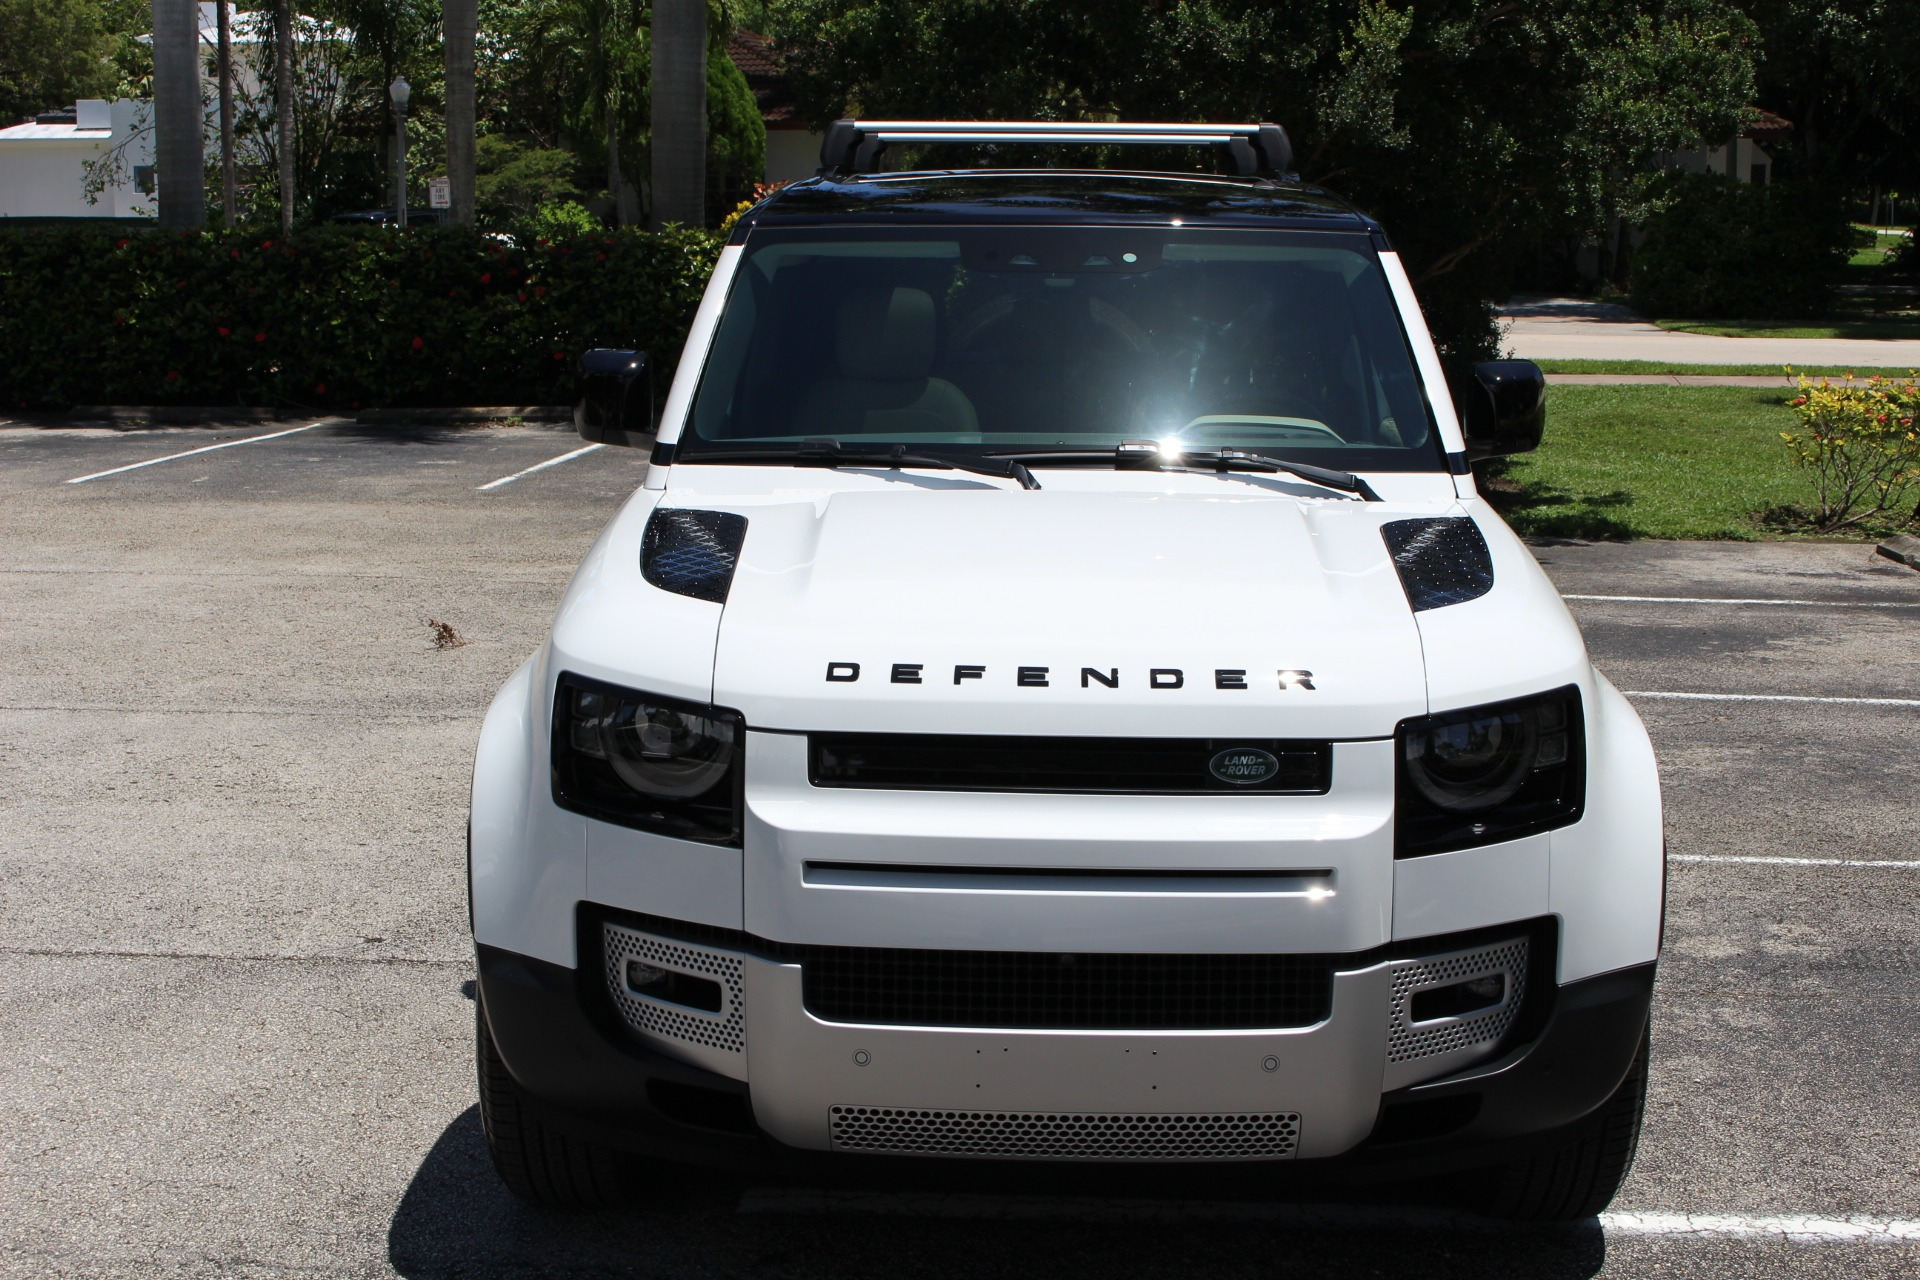 Used 2020 Land Rover Defender 110 HSE for sale Sold at The Gables Sports Cars in Miami FL 33146 4